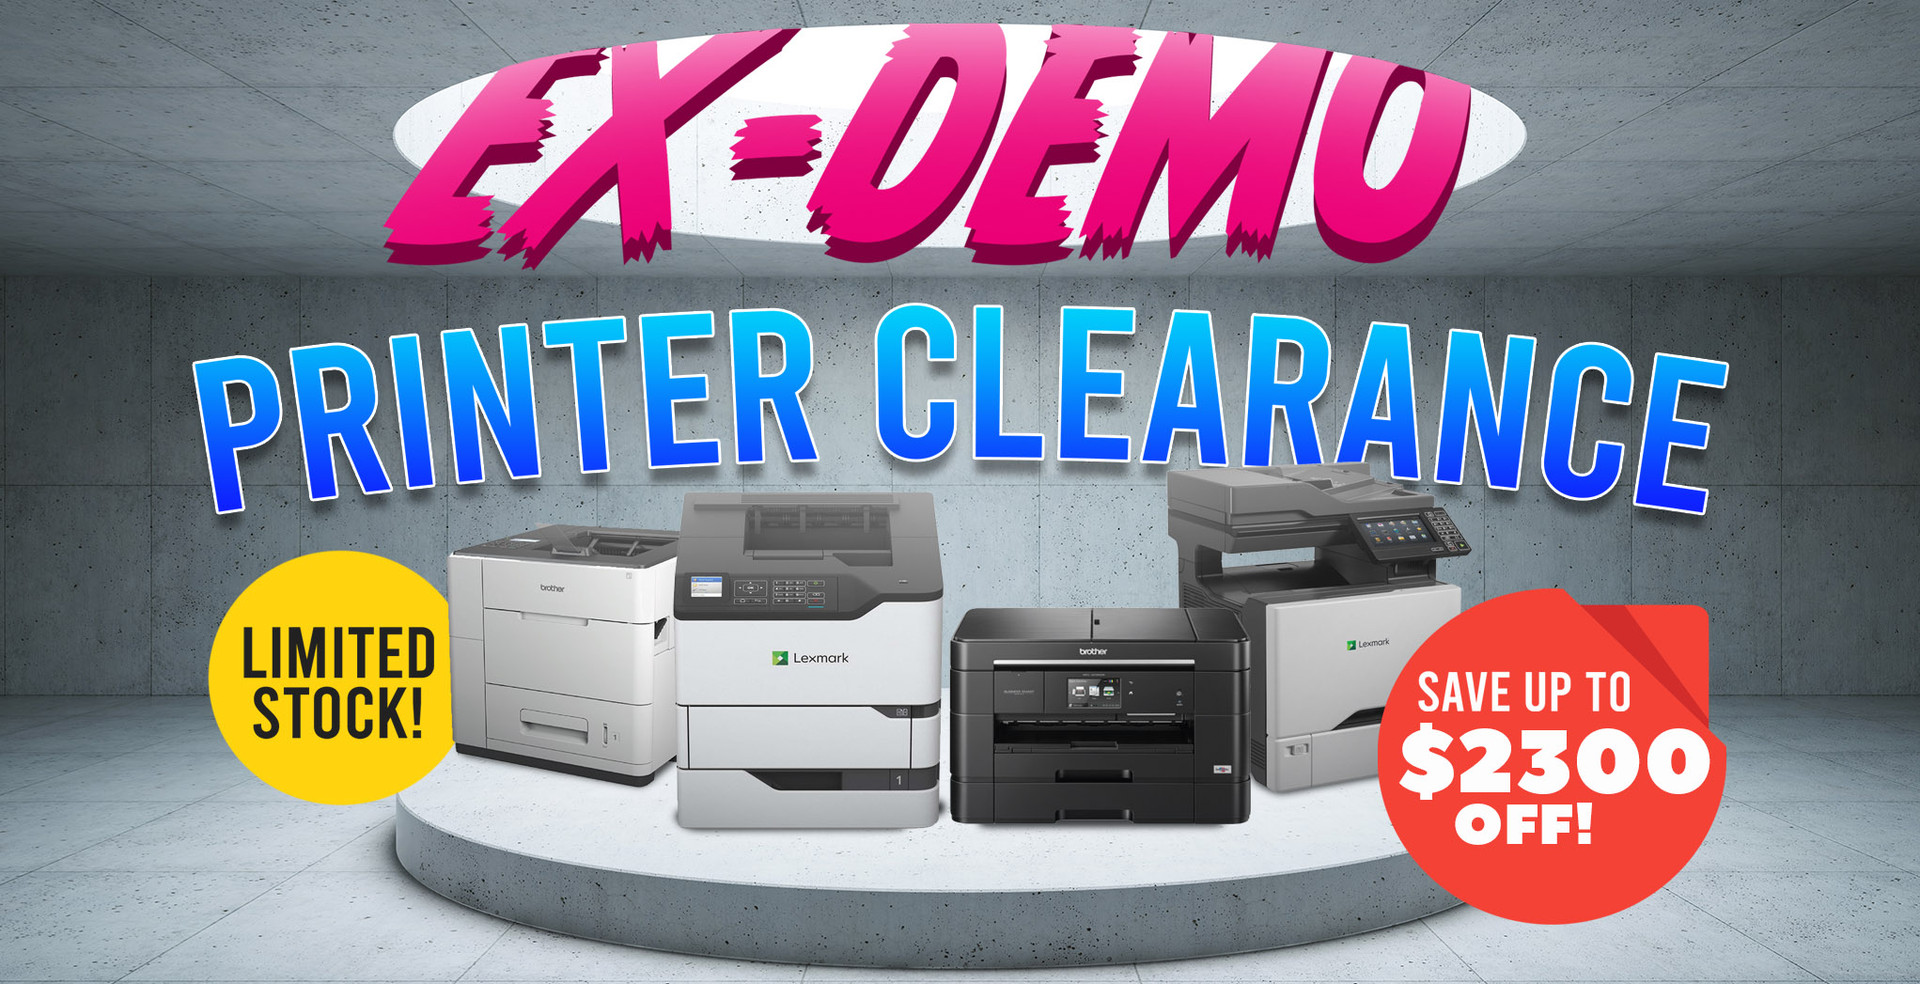 Ex-Demo Printer Clearance: Save up to $2,300 off!